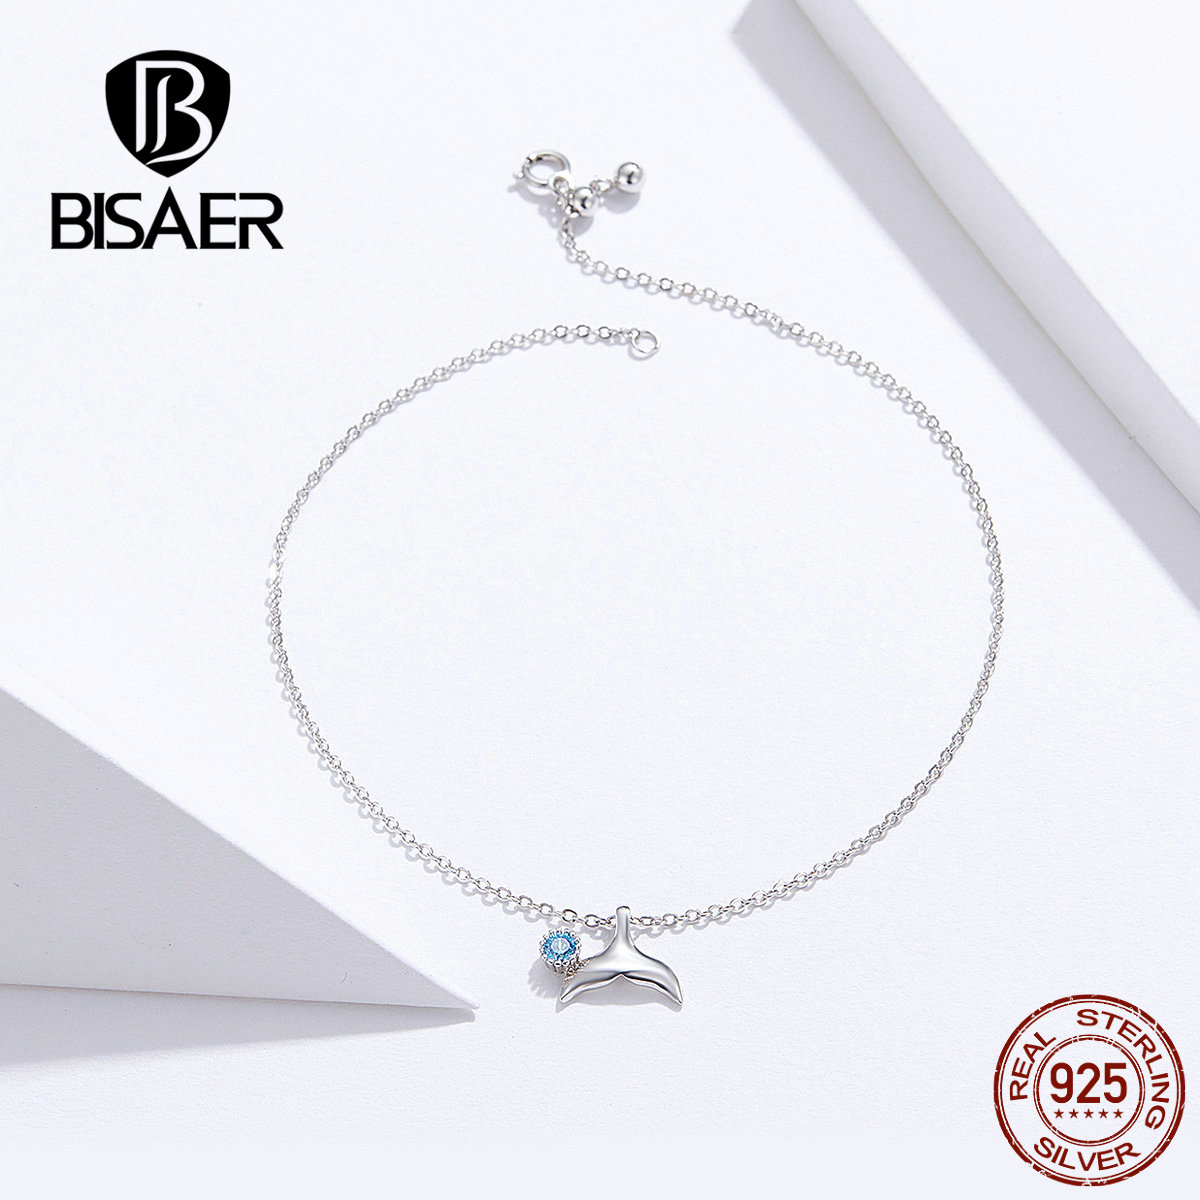 BISAER Mermaid Anklets 925 Sterling Silver Mermaid's Story Chain Silver Anklets for Women Sterling Silver Jewelry ECT004 1